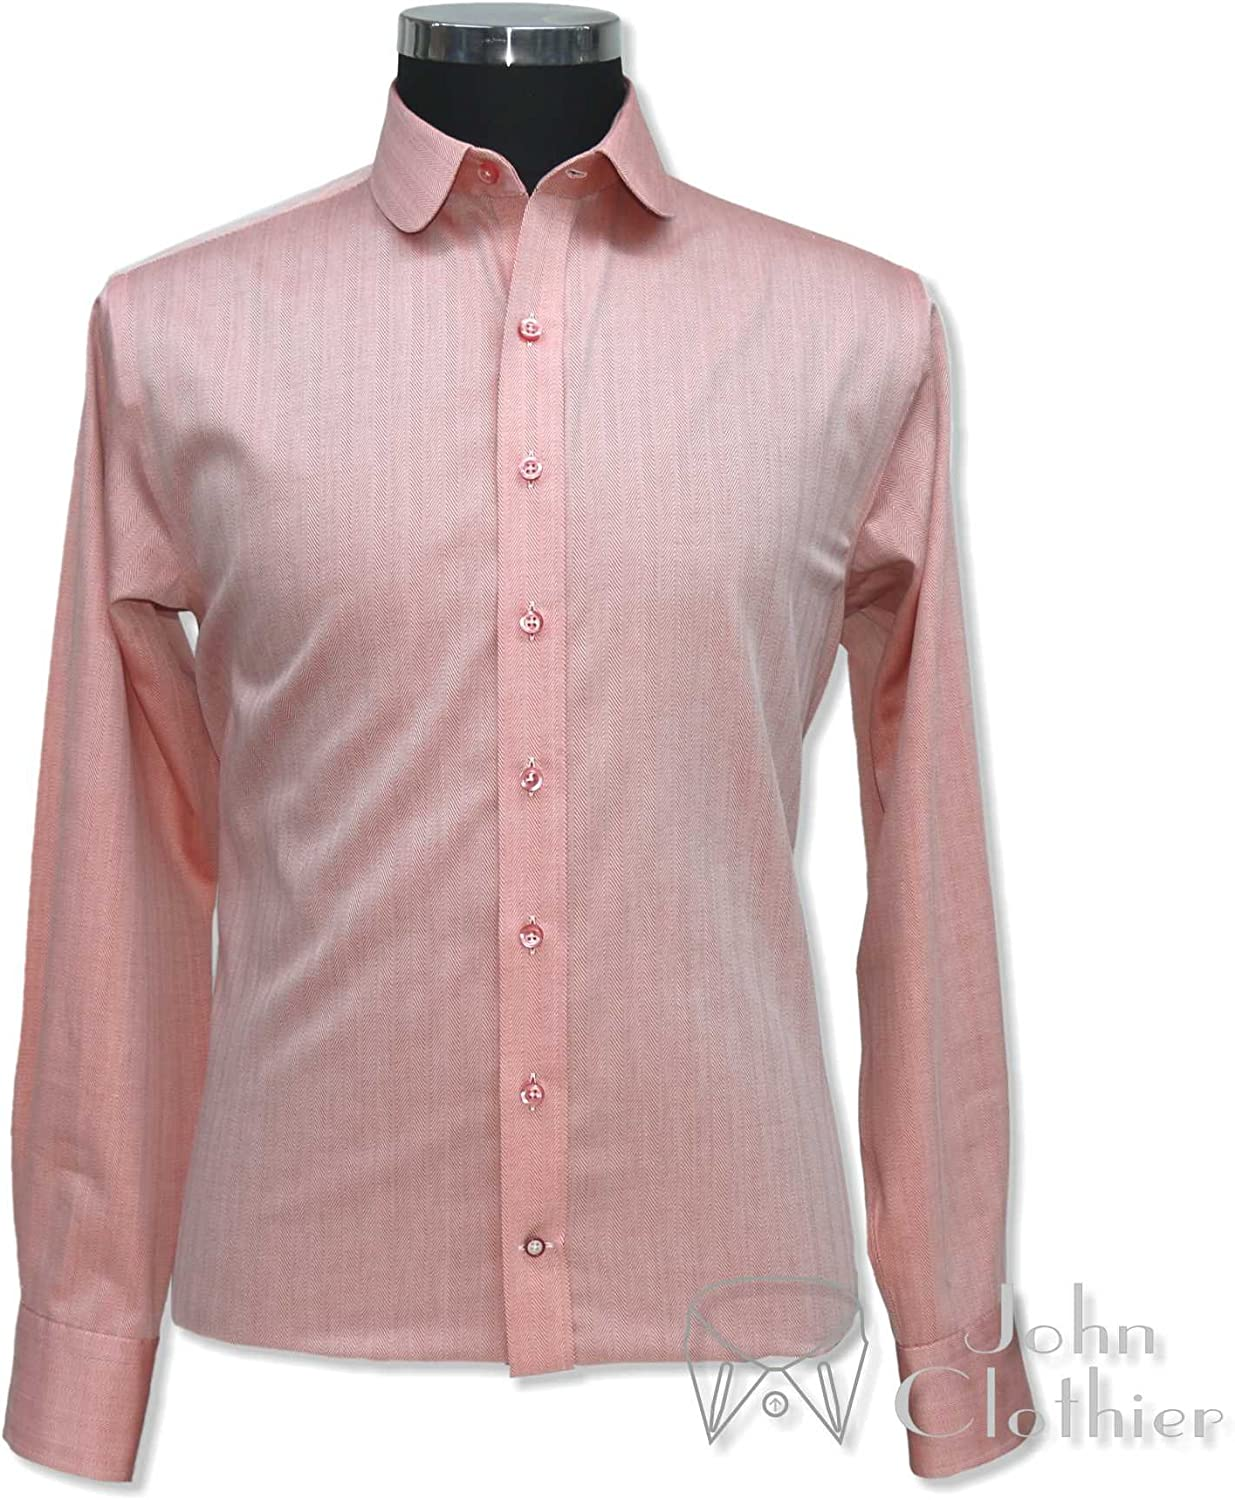 WhitePilotShirts Round Collar for Peaky Binders Mens Shirt Orange Herringbone 100/% Cotton Penny Collar Gents 100-28